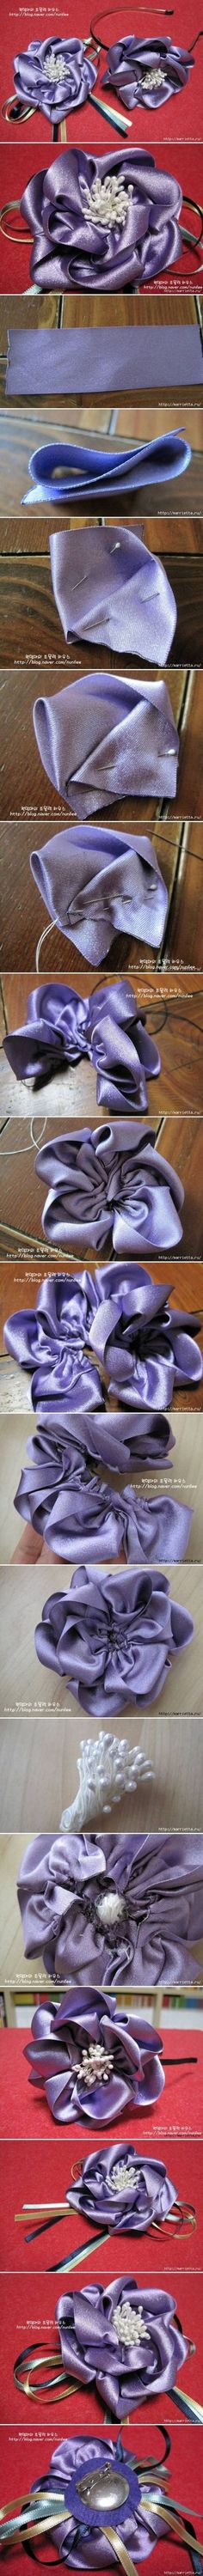 How to make Satin Ribbon Flower Brooch bouquet step by step DIY tutorial instructions / How To Instructions on imgfave